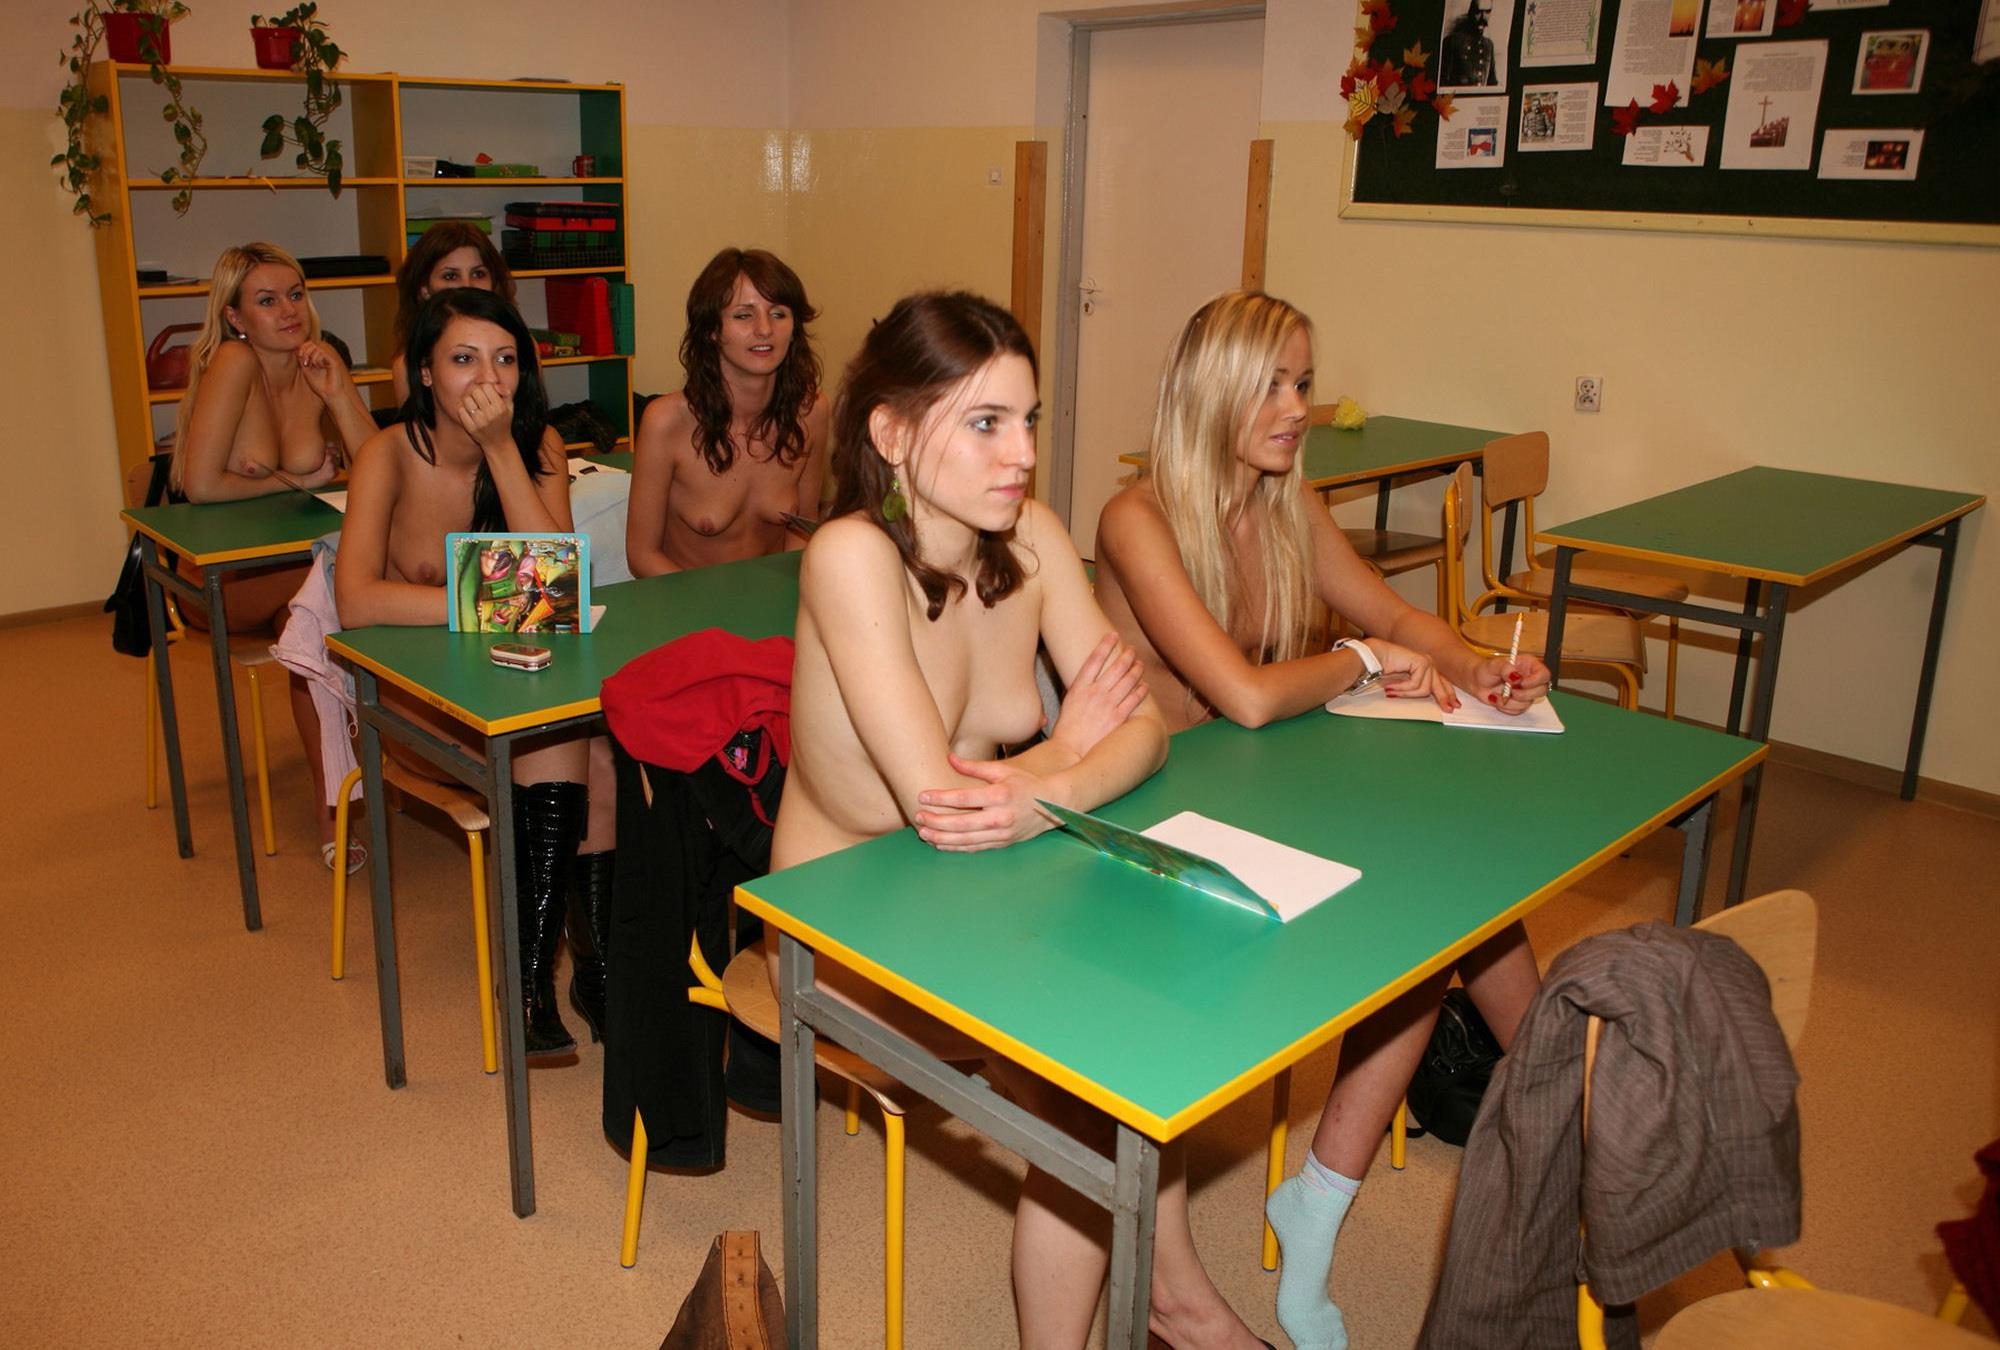 Nude girl goes to school, black masterbation gif